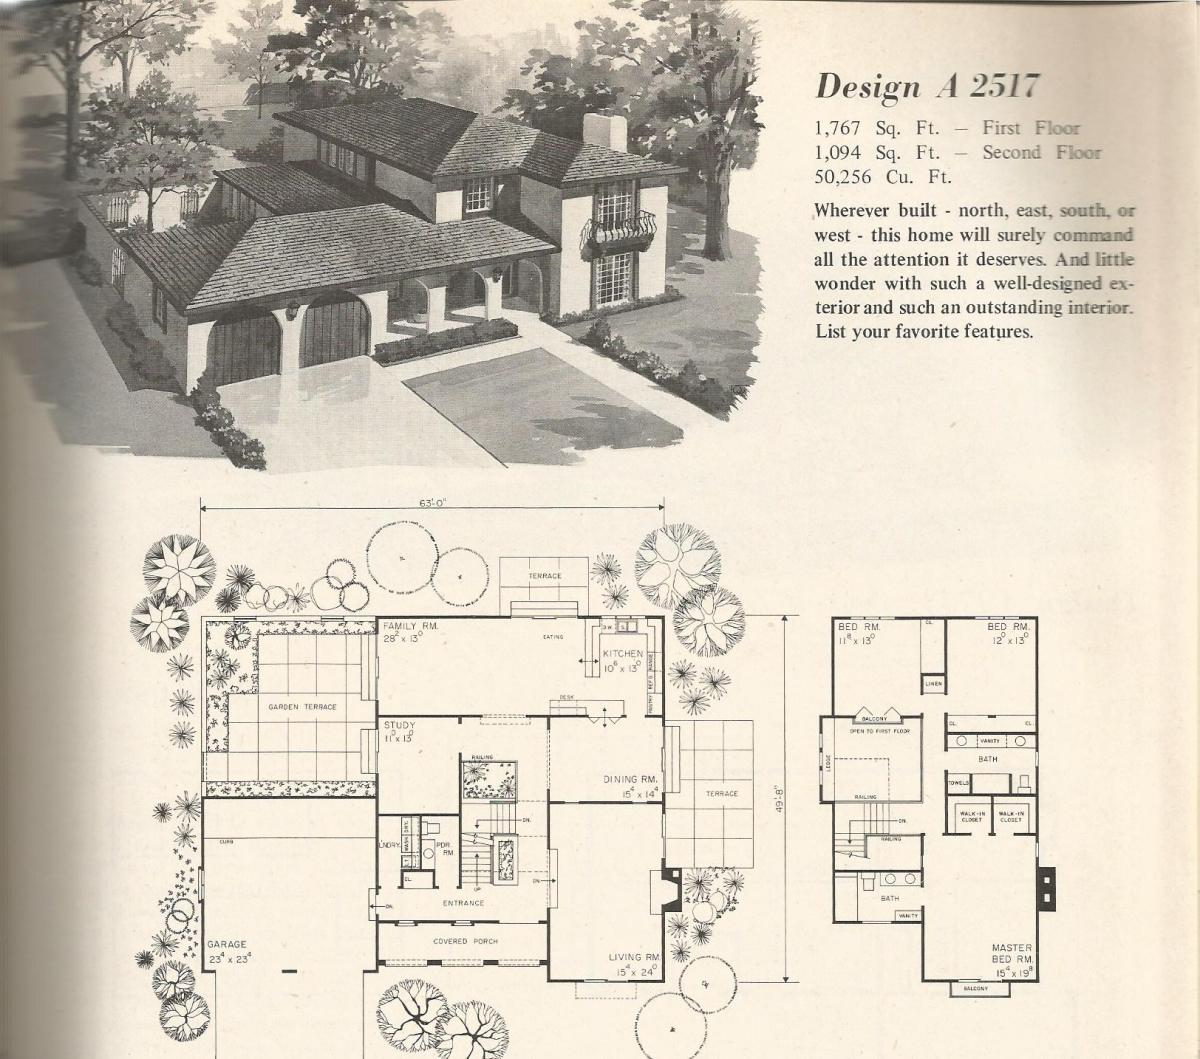 Vintage Home Plans Old West 2517